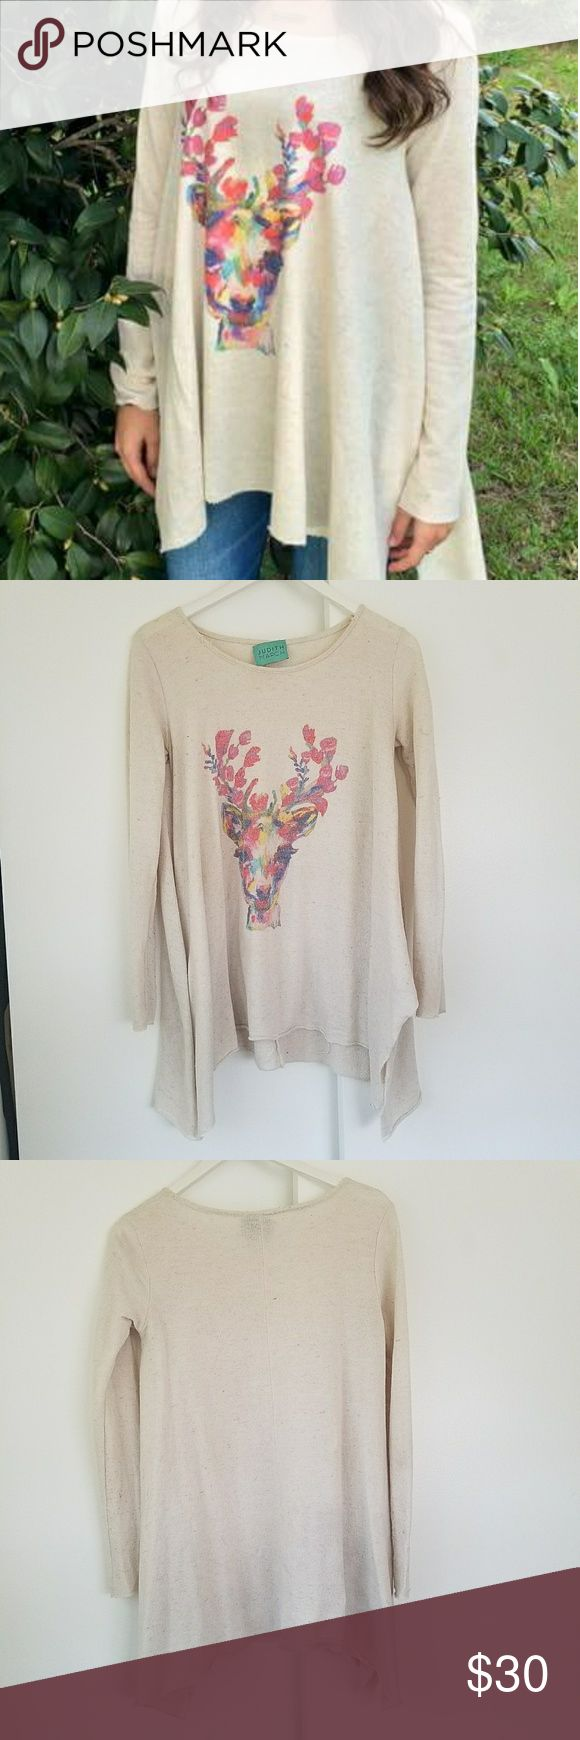 Judith March Deer Sweater - Small Judith March, boutique quality deer sweater. No Stains, Holes, or Tears. Always Hang Dried. Judith March Tops